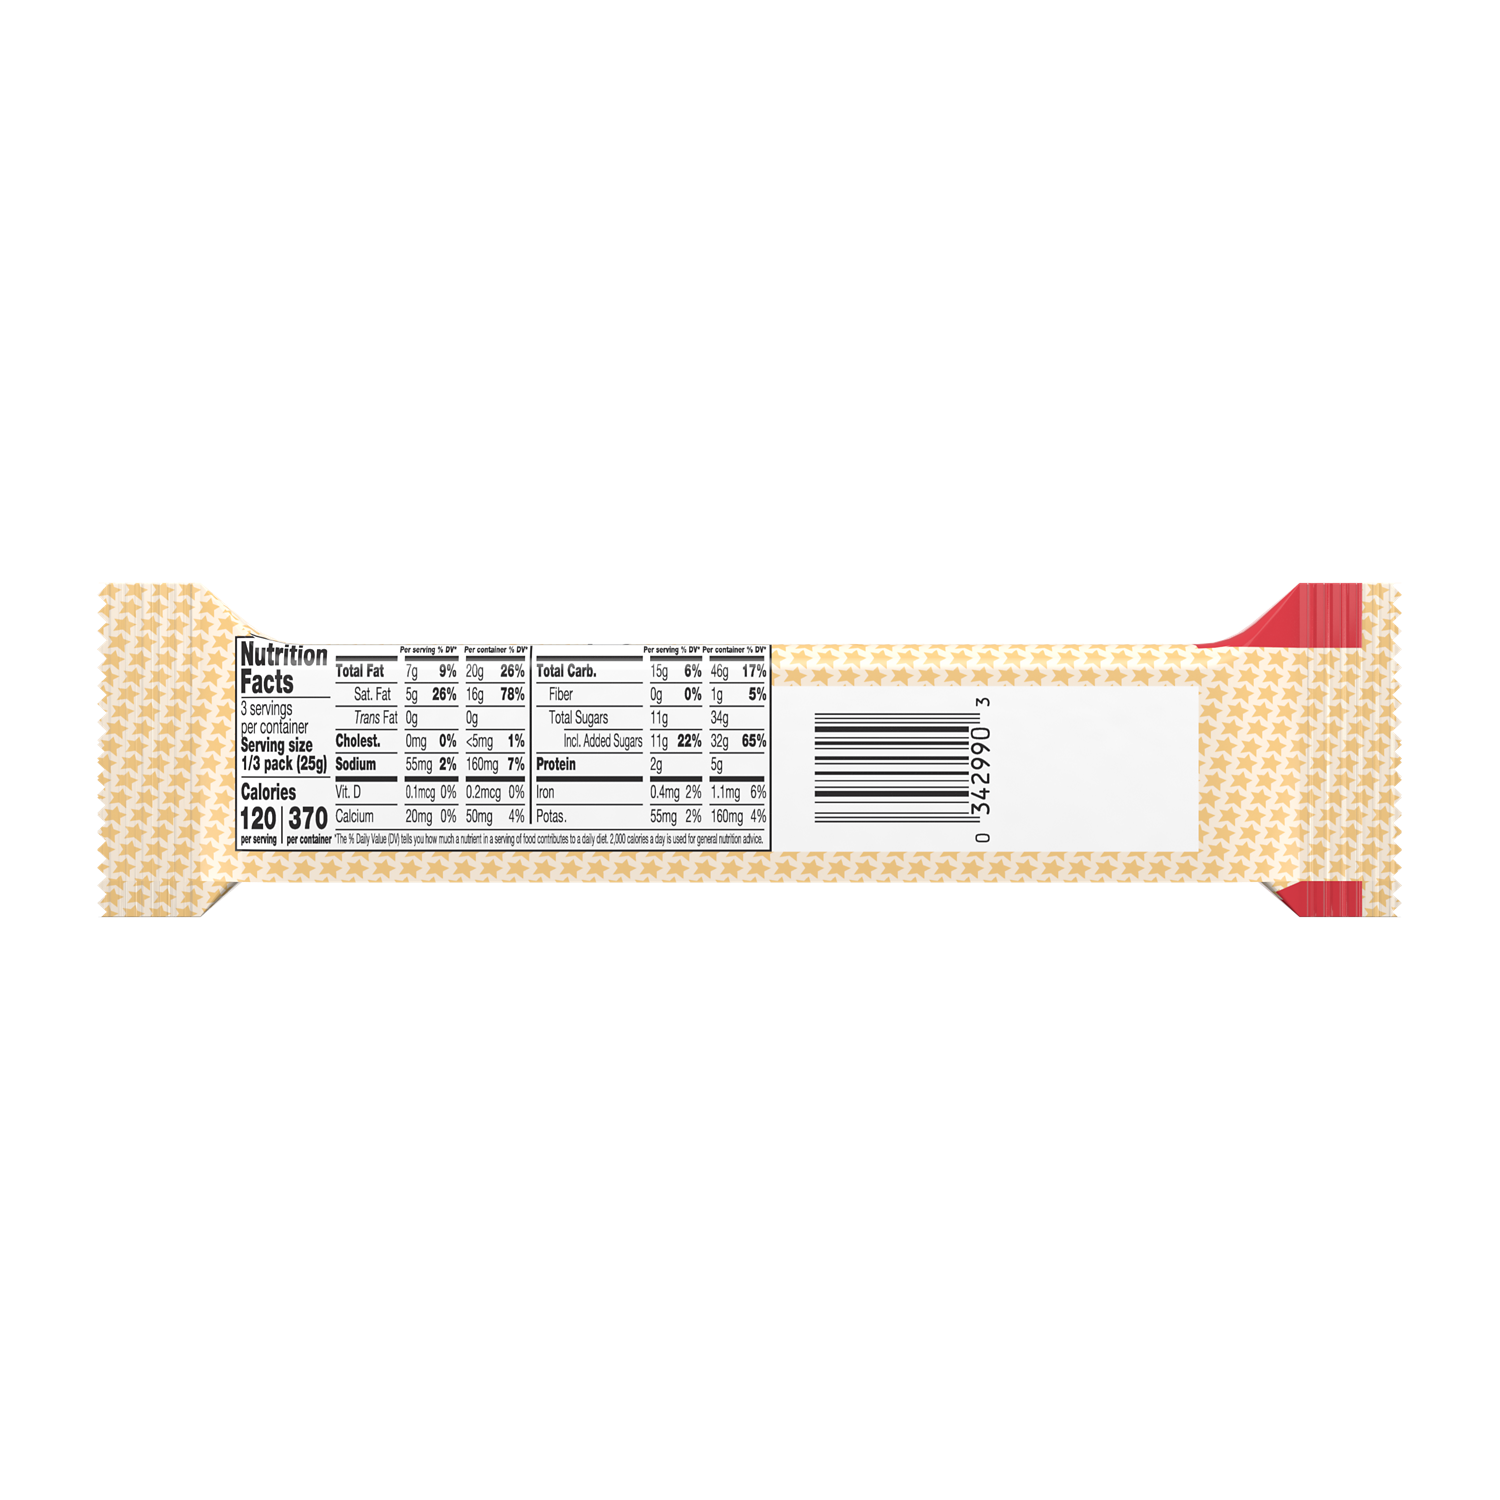 WHATCHAMACALLIT King Size Candy Bar, 2.6 oz - Back of Package